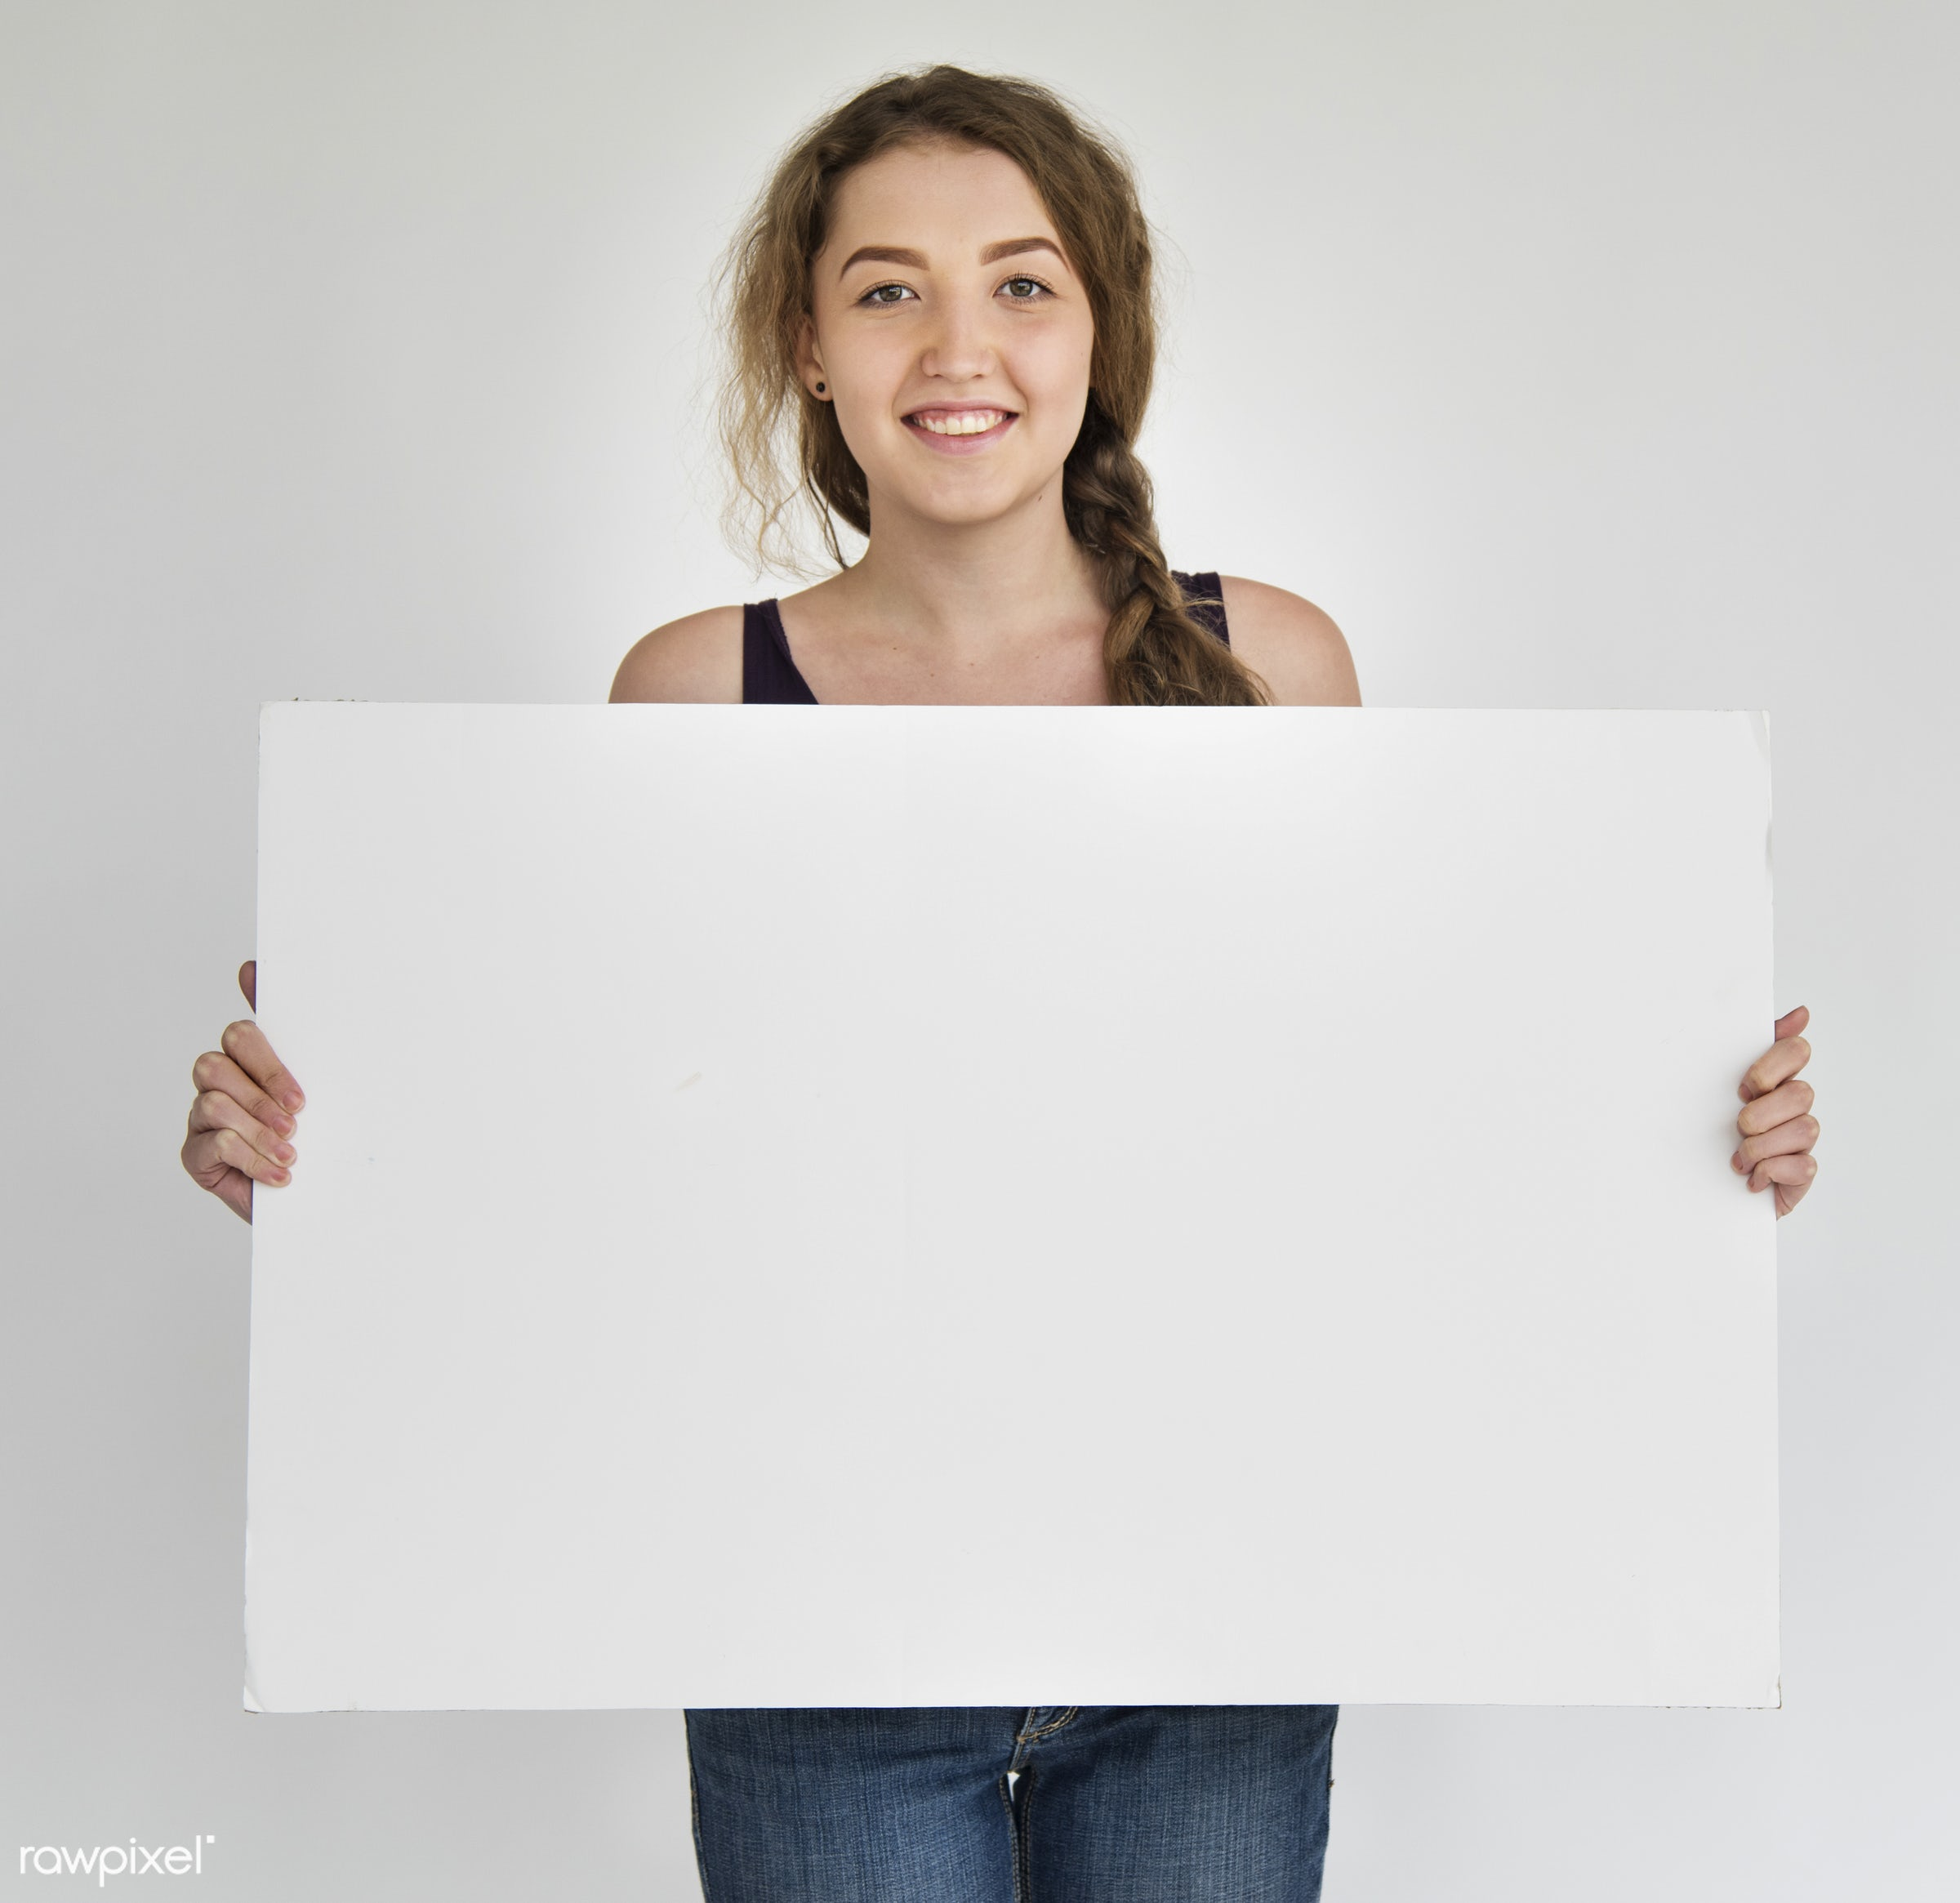 background, banner, billboard, blank, board, canvas, casual, cheerful, concept, copy space, cute, empty, enjoyment, female,...